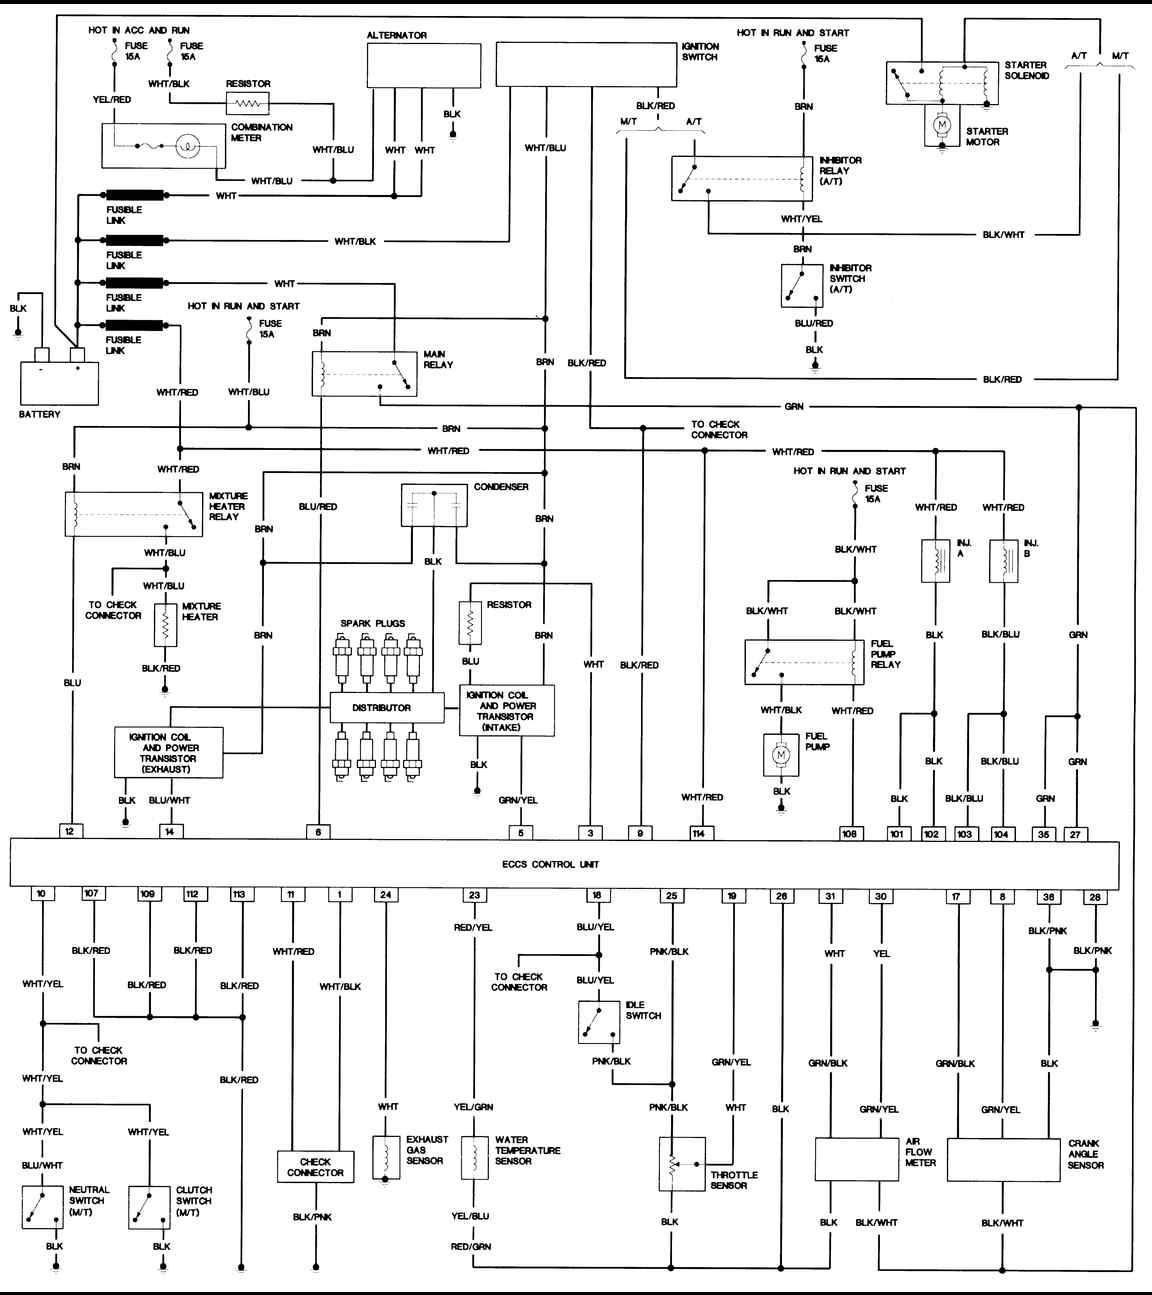 [DIAGRAM] Aftermarket Stereo Wiring Diagram Jvc Radio Wire